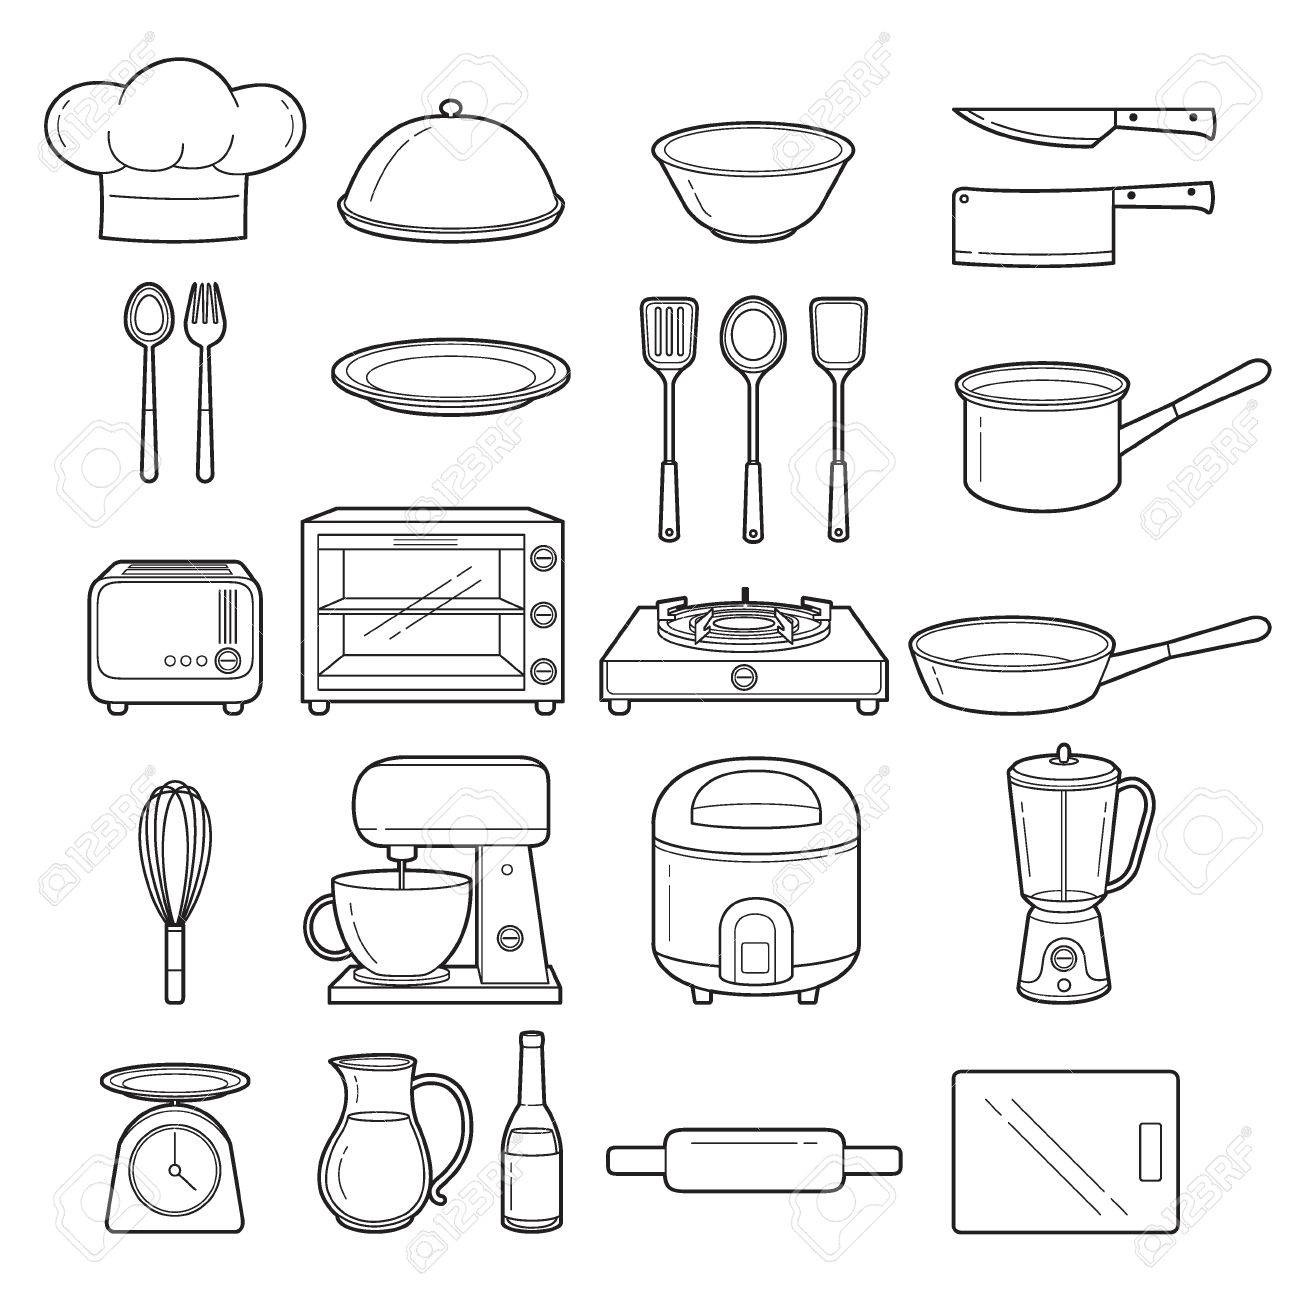 Kitchen Equipment Outline Icons Set Appliance Crockery Cooking